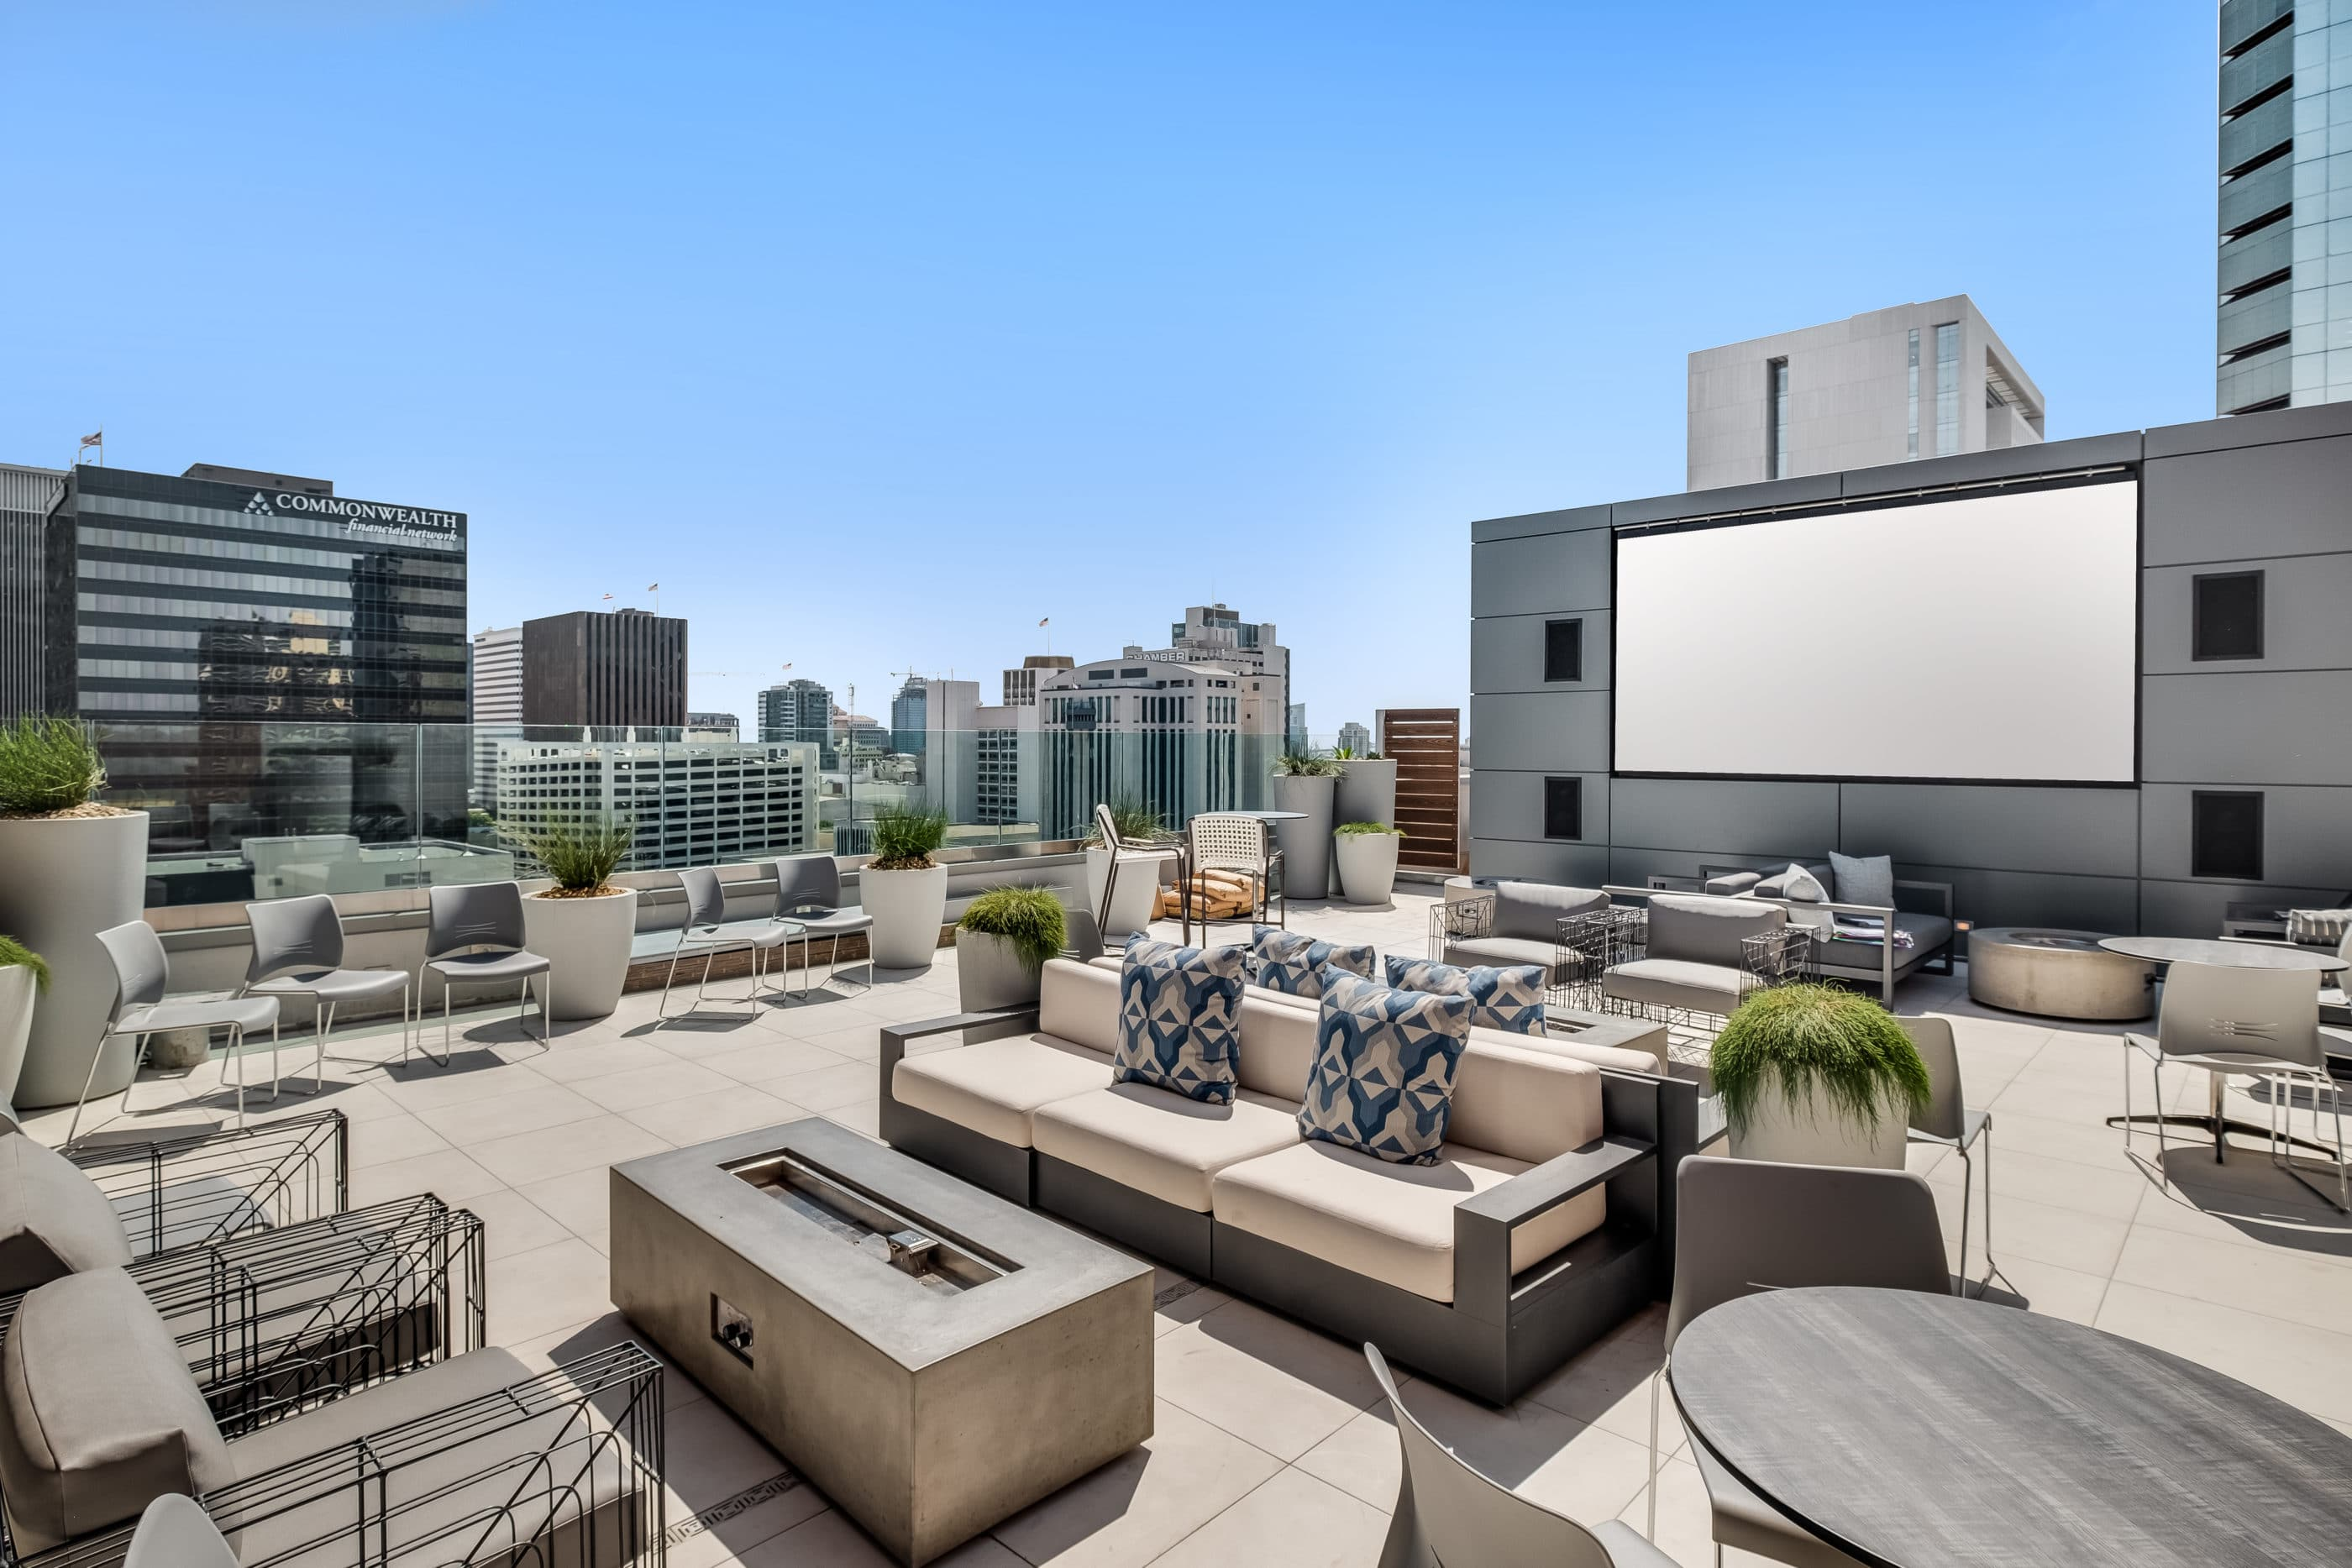 Rooftop lounge with large TV screen and outdoor seating areas at Carte Hotel San Diego.